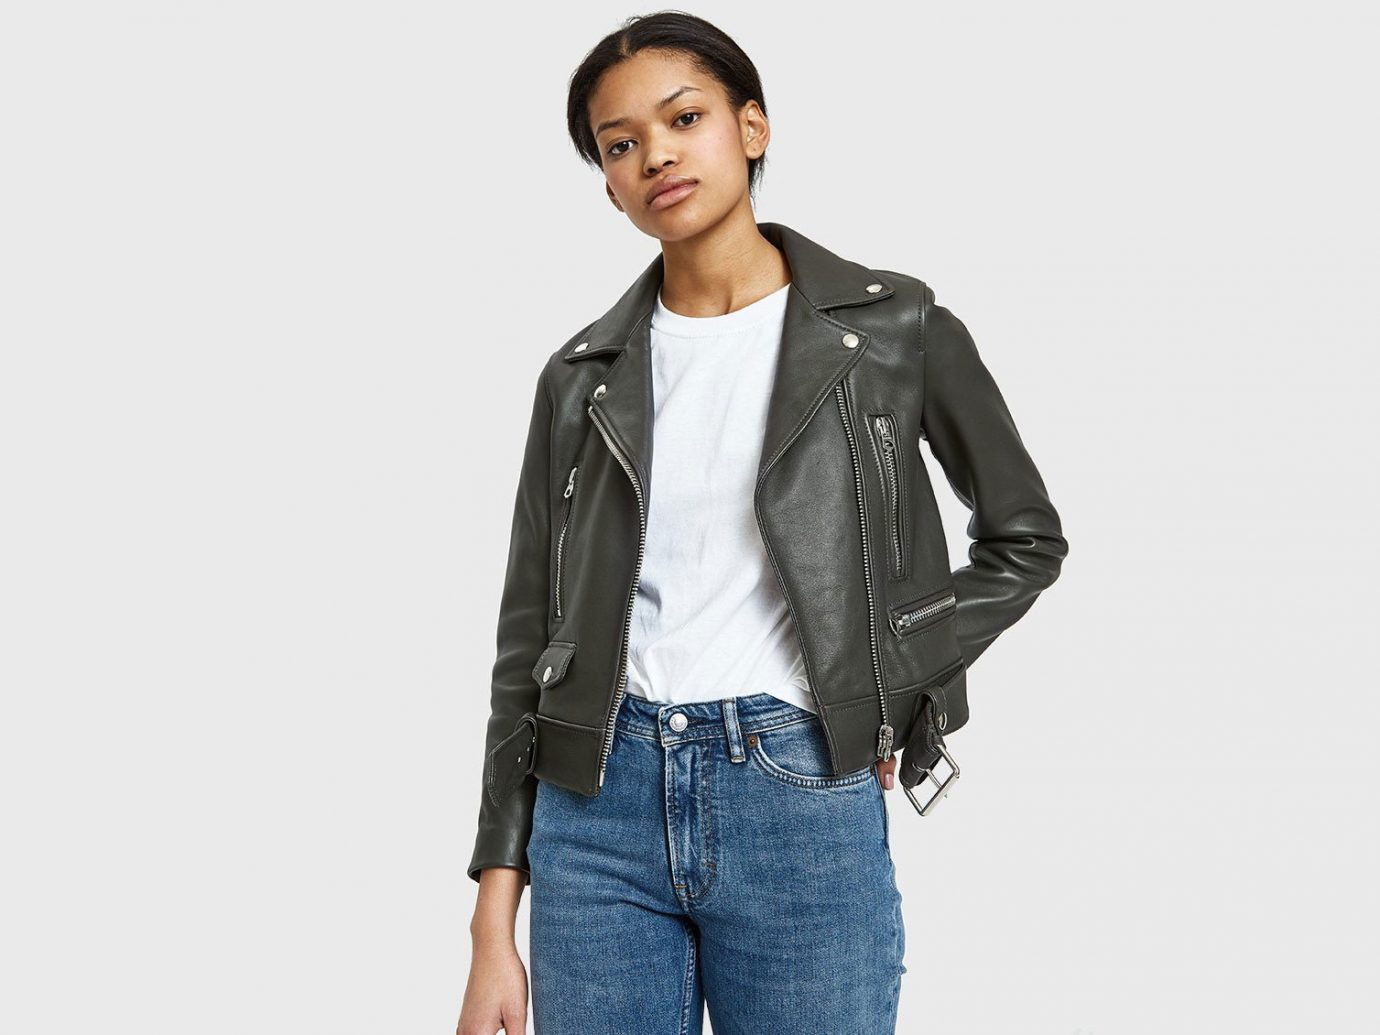 Packing Tips Style + Design Travel Shop person jacket fashion model leather jacket leather model material jeans coat posing sleeve supermodel suit